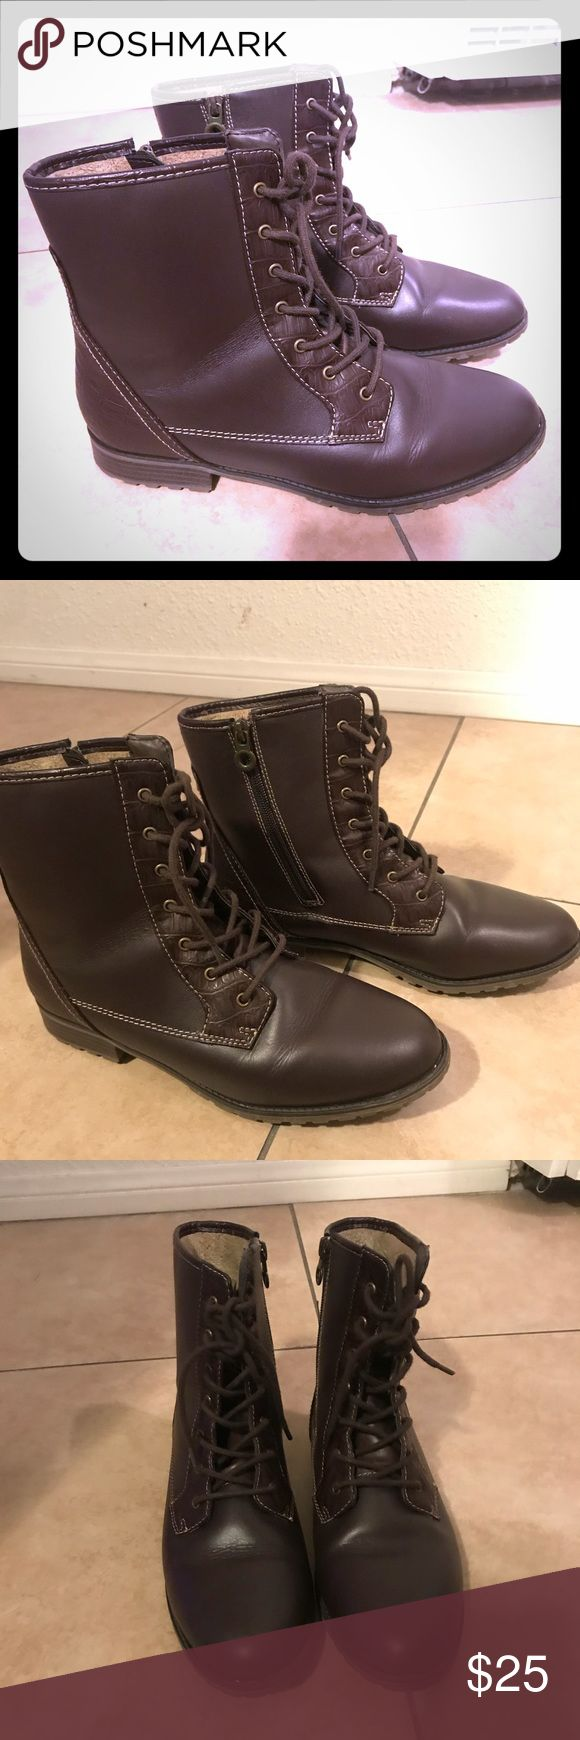 Sporto Boots! W 9.5 Leather and man made upper. Great condition Sporto Shoes Lace Up Boots